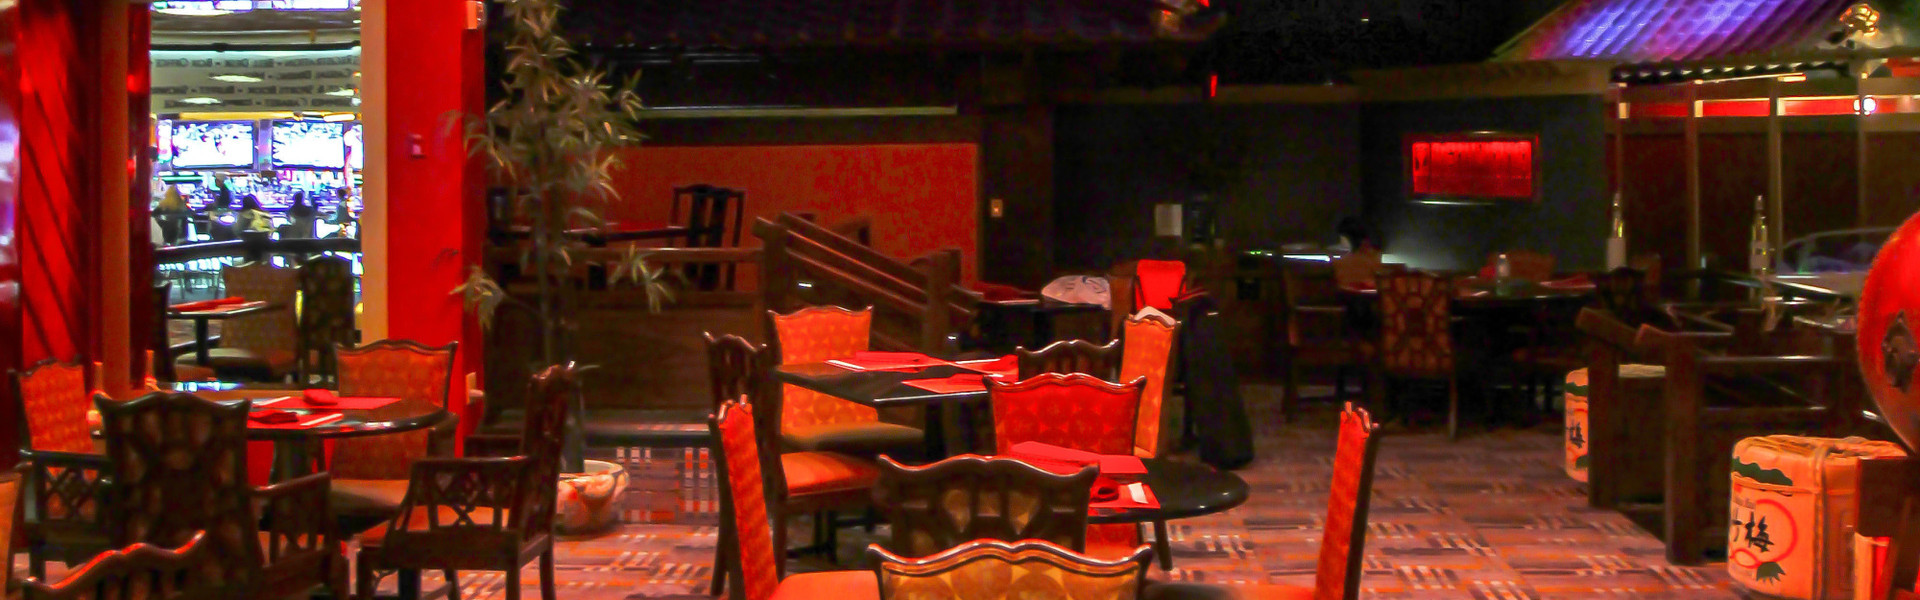 Silk Road Asian Bistro at our Las Vegas Hotel and Casino | Interior of Silk Road Asian Bistro